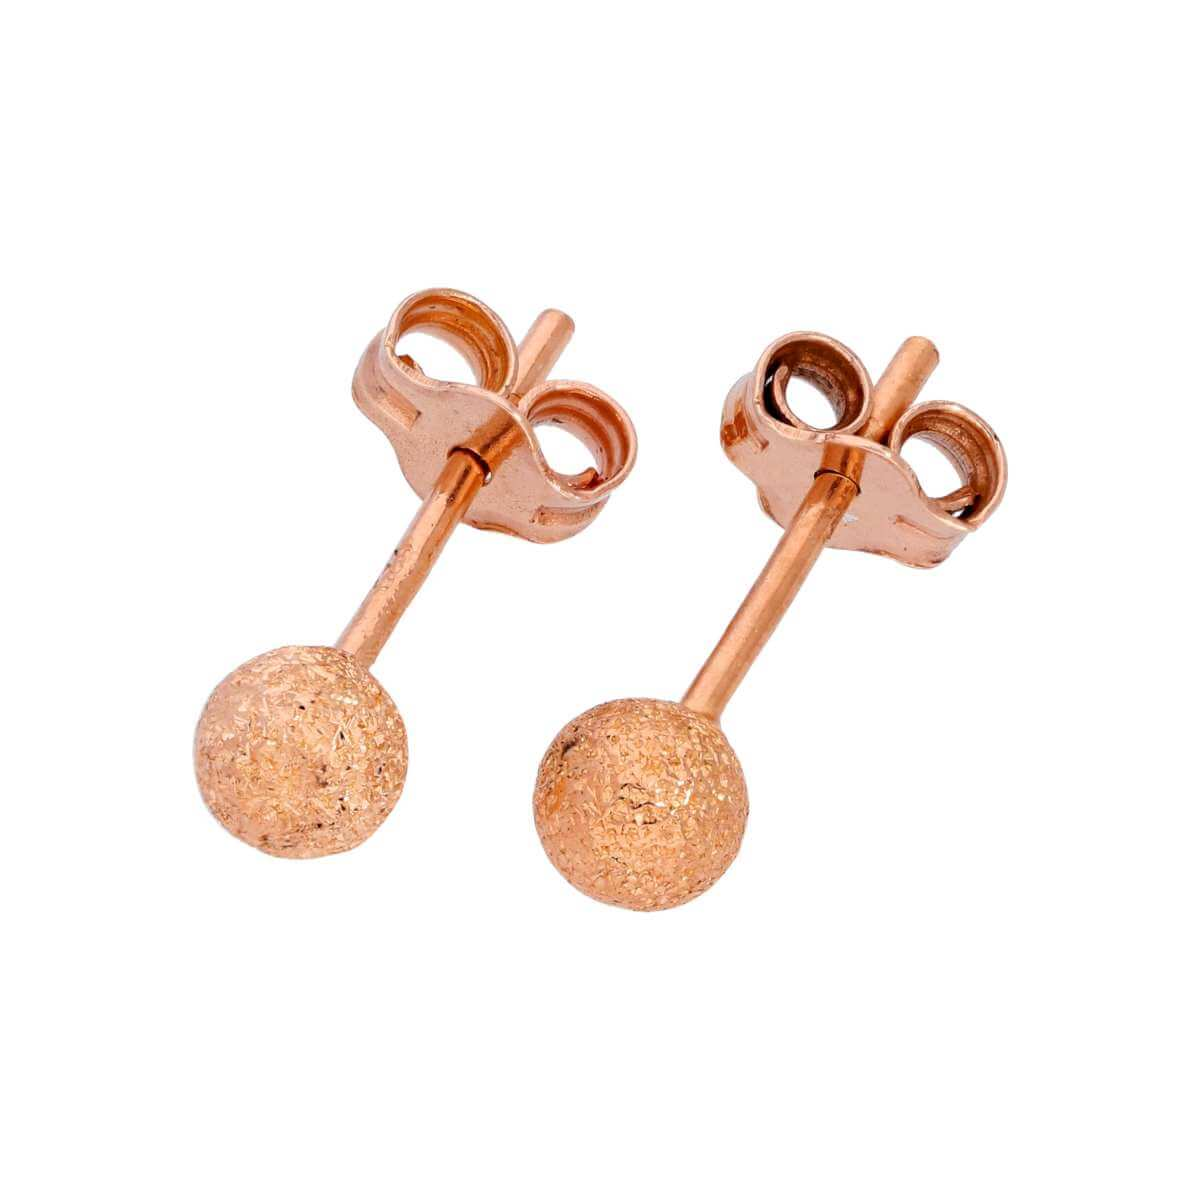 Rose Gold Plated Frosted Sterling Silver Ball Stud Earrings 4mm